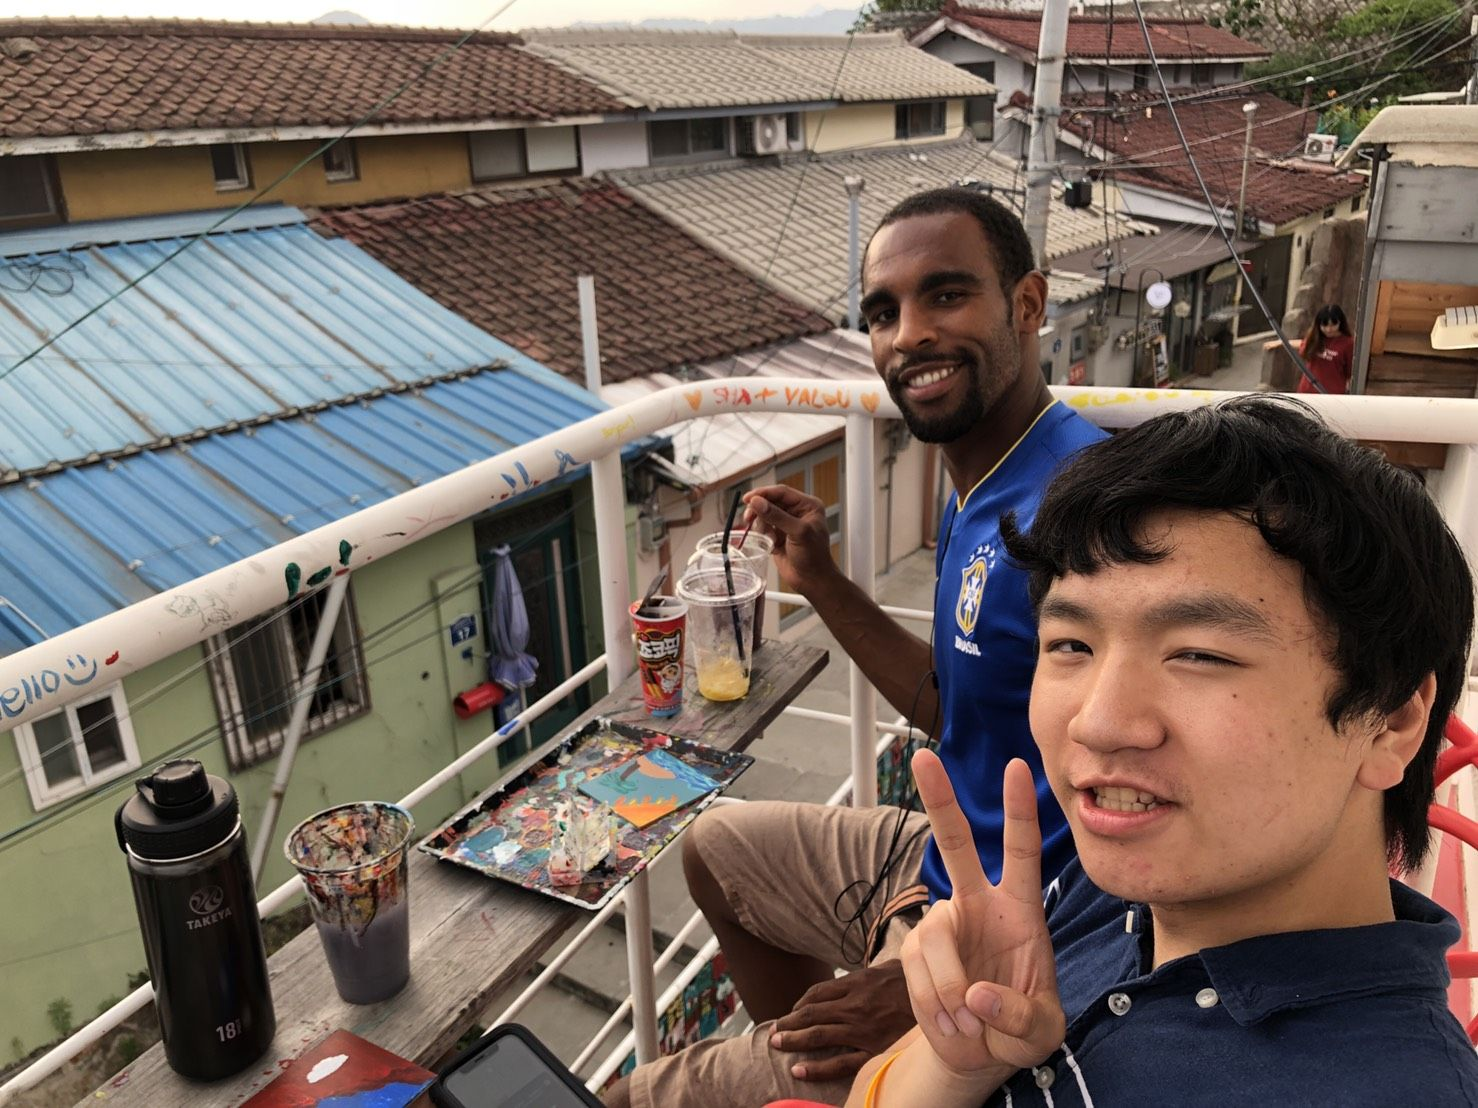 Student and program leader sitting on the rooftop of a cafe in Iwha Mural Village.